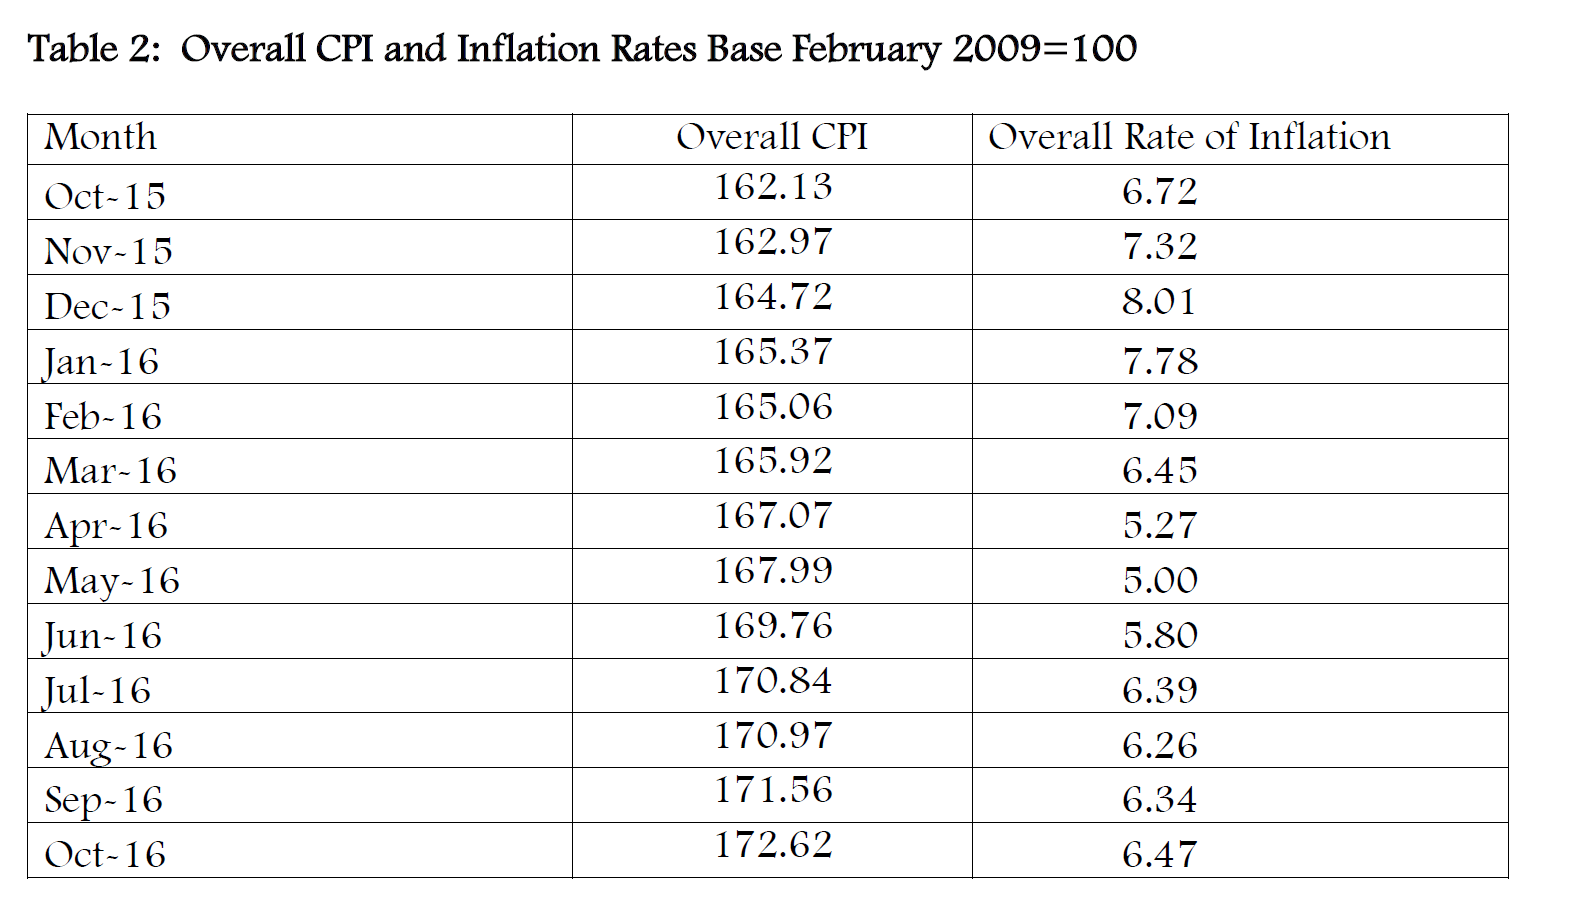 Kenya's CPI and Inflation Rates for October, 2016